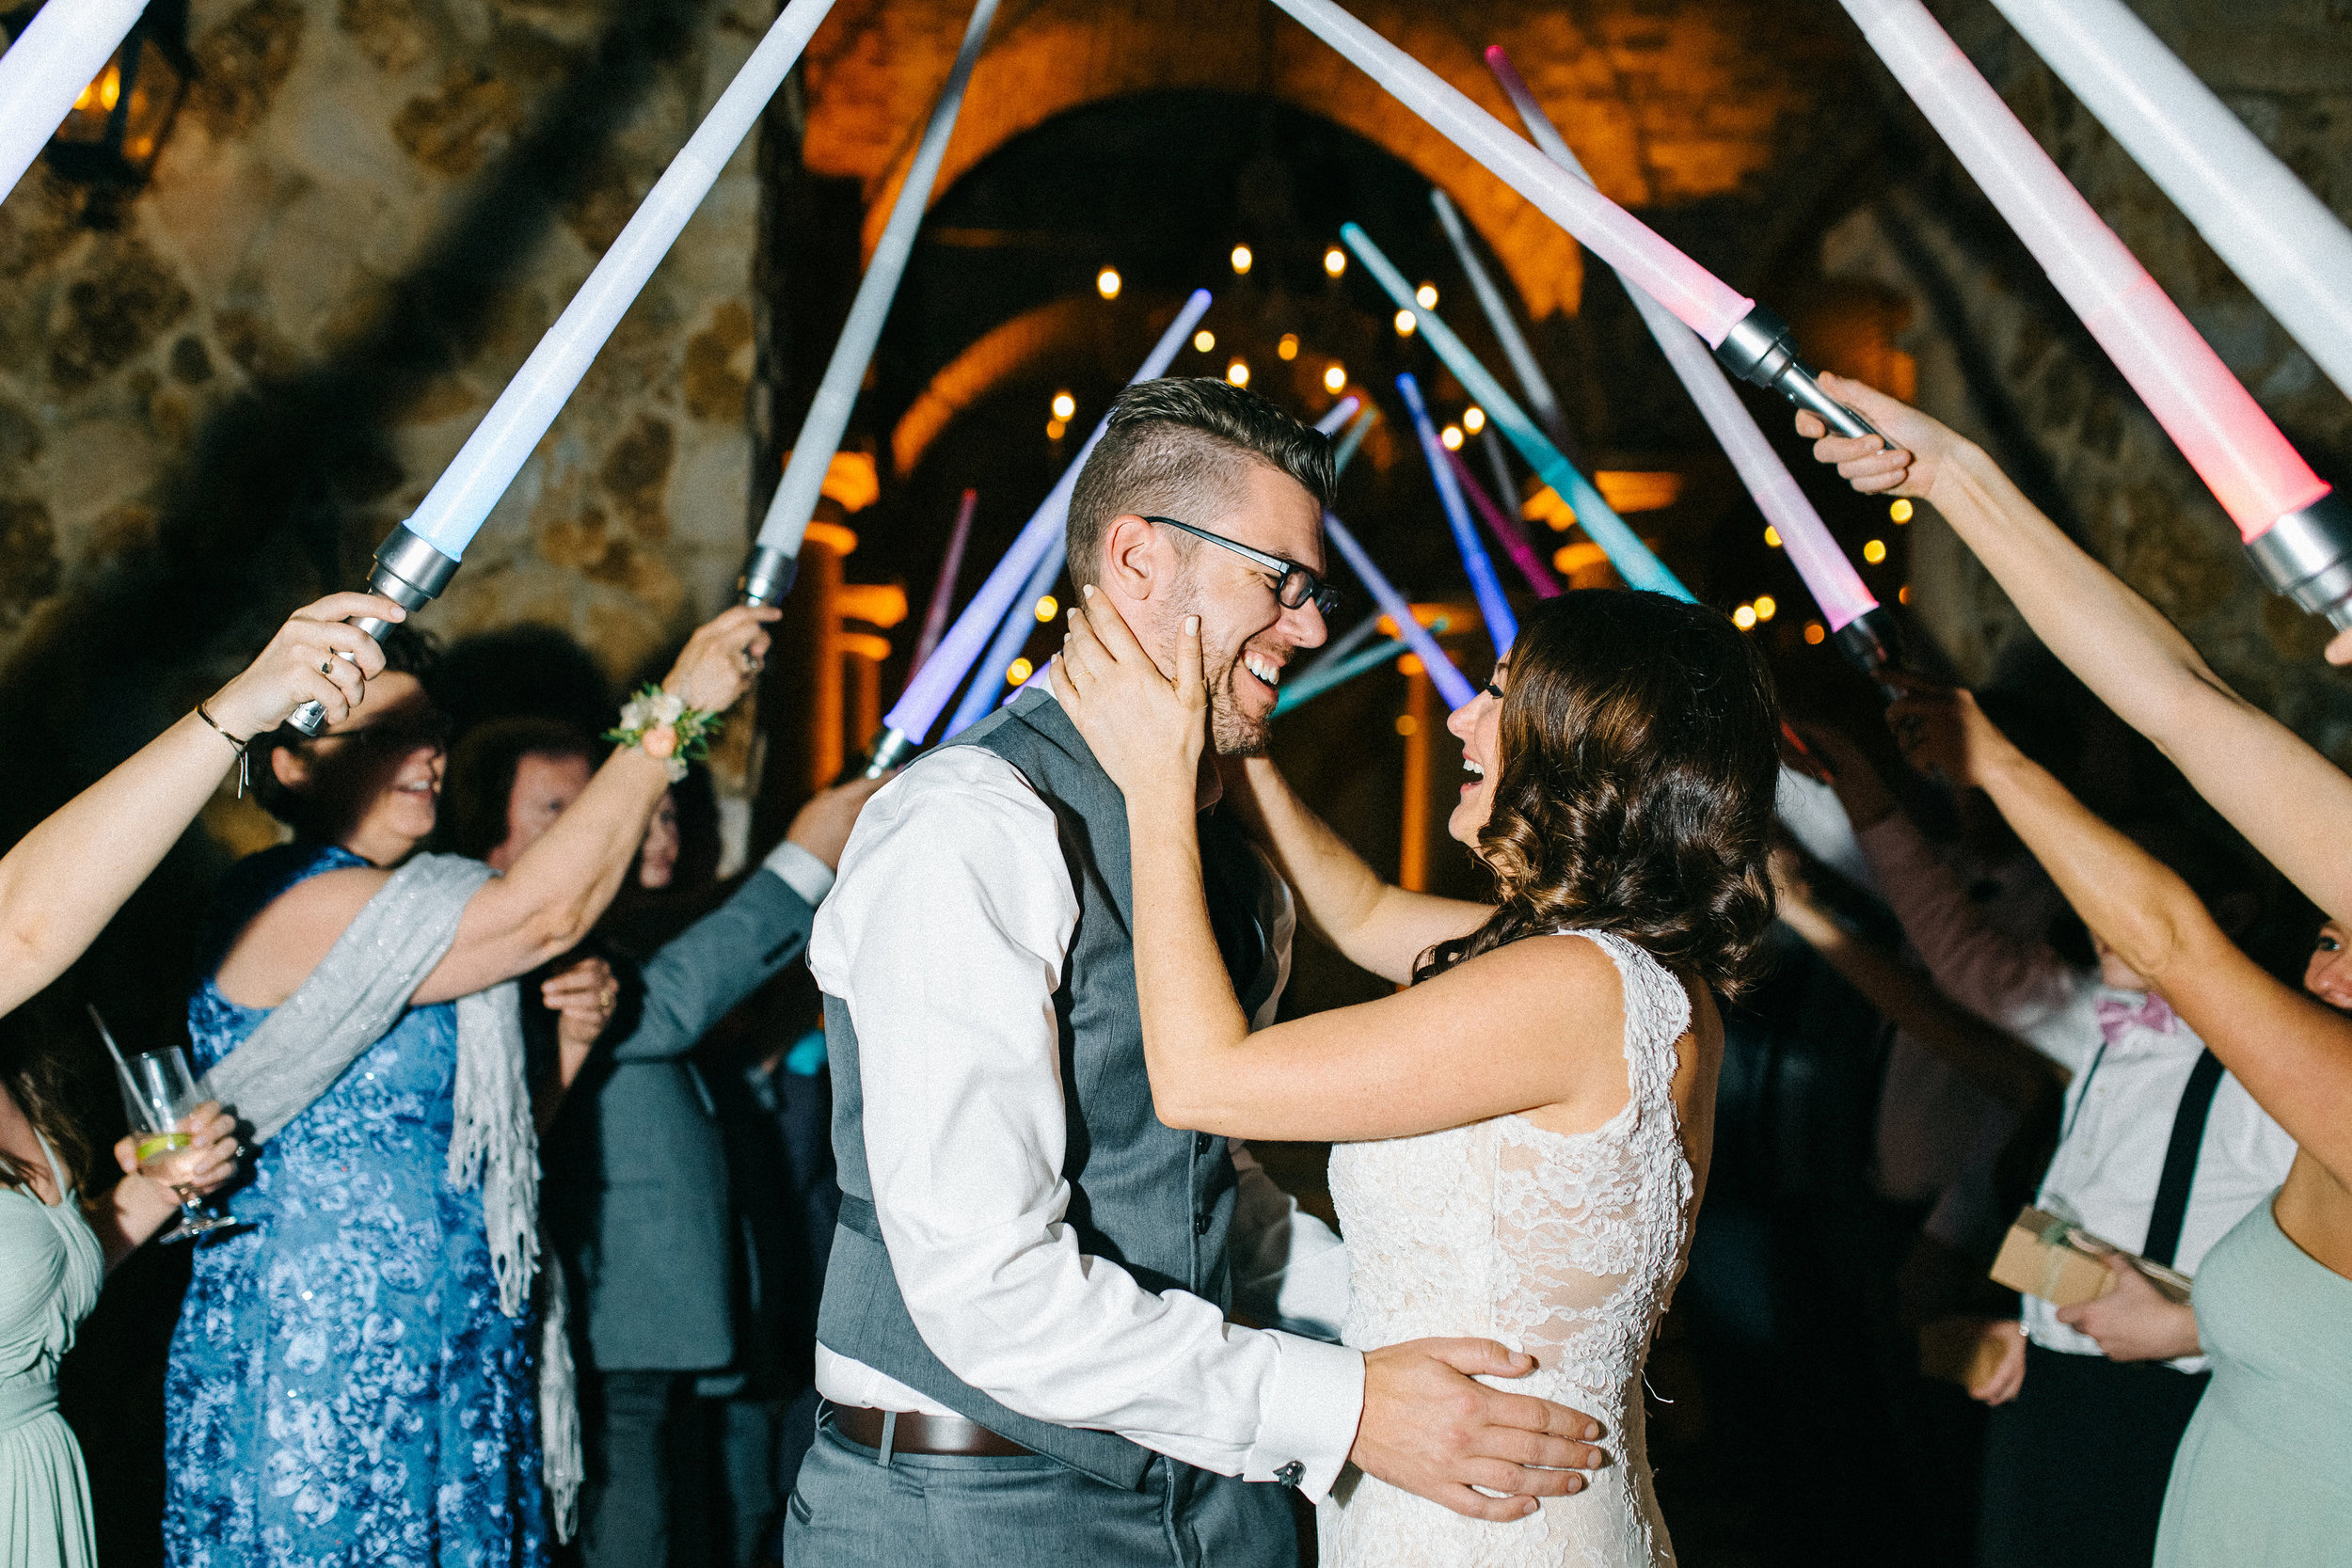 Light Saber Grand Exit for the Newlyweds   Orlando Wedding Planner Blue Ribbon Weddings  Orlando Wedding Photographer Emma Shourds Photography  Wedding Ceremony at Bell Tower at Bella Collina  Wedding Reception in Atrium at Bella Collina